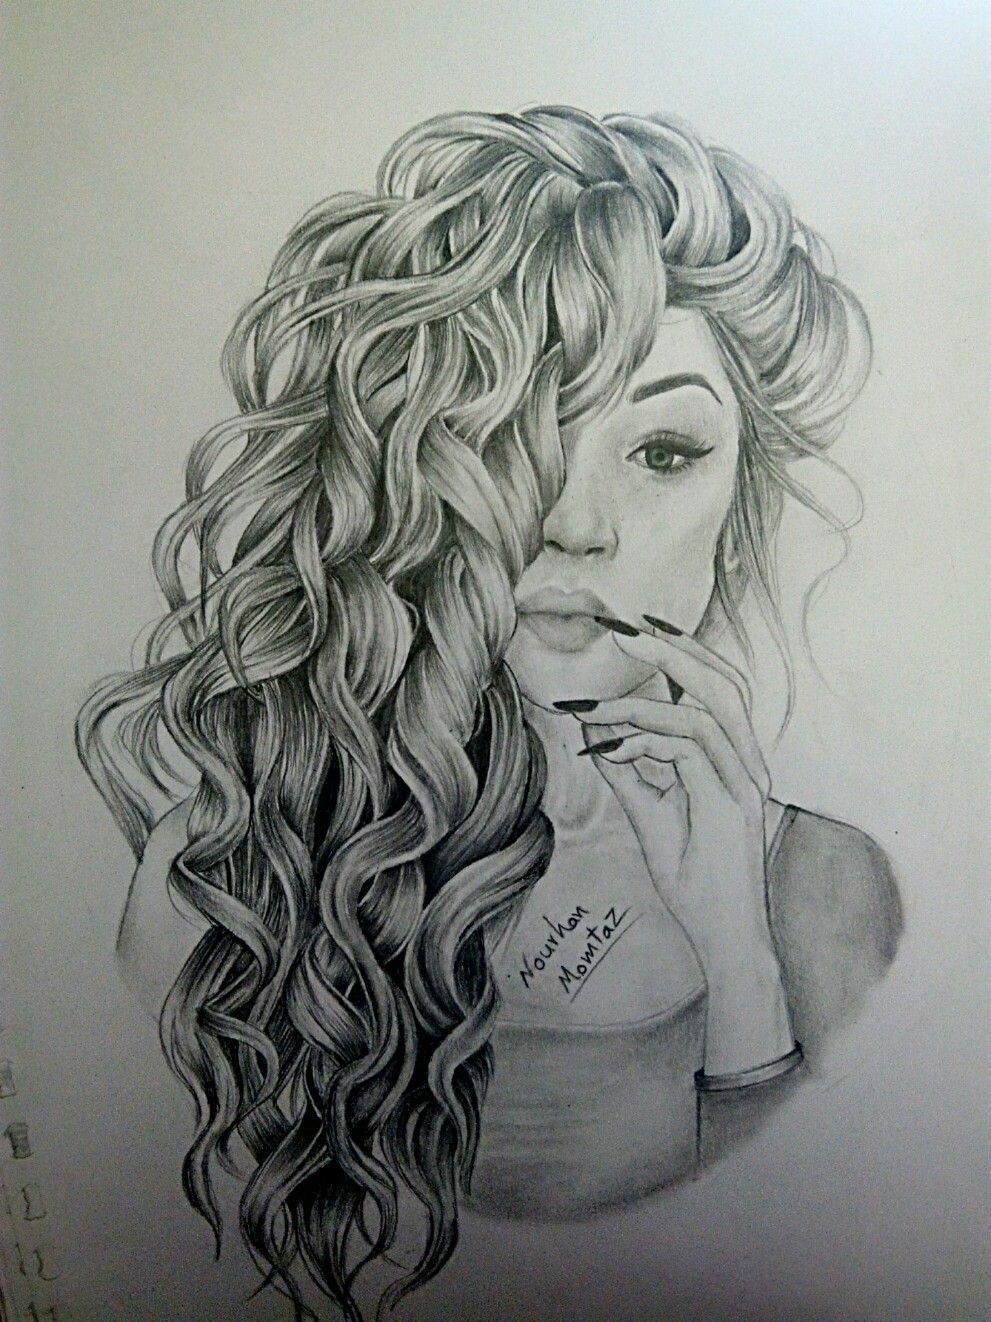 Drawing Curlyhair Art Sketch Pencildrawing Girl Portrait Magdalena Lena Drawing Curlyhair Art In 2020 How To Draw Hair Pencil Drawings Of Girls Curly Hair Drawing